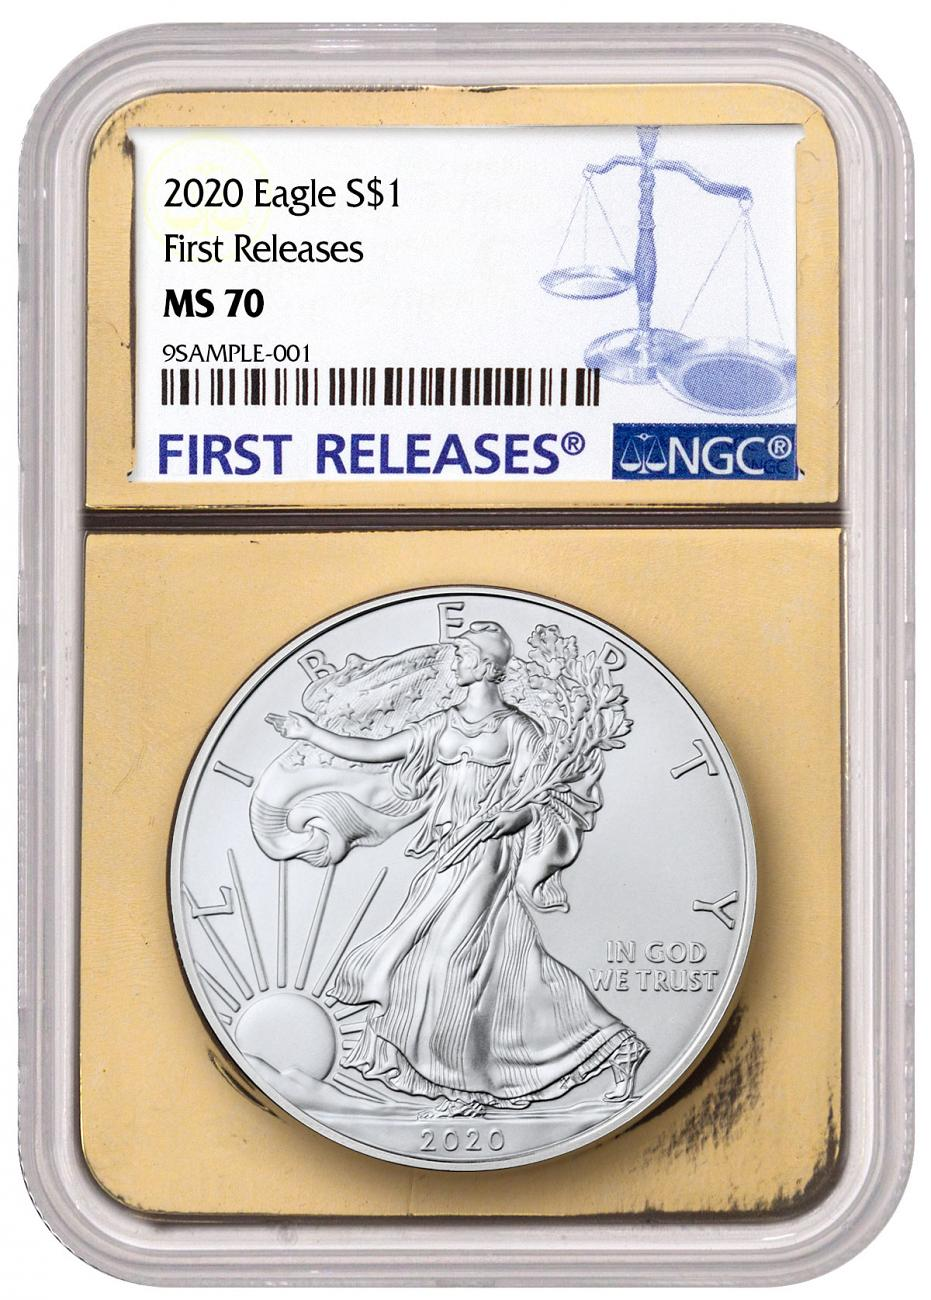 2020 1 oz American Silver Eagle $1 Coin NGC MS70 FR Gold Foil Core First Releases Label